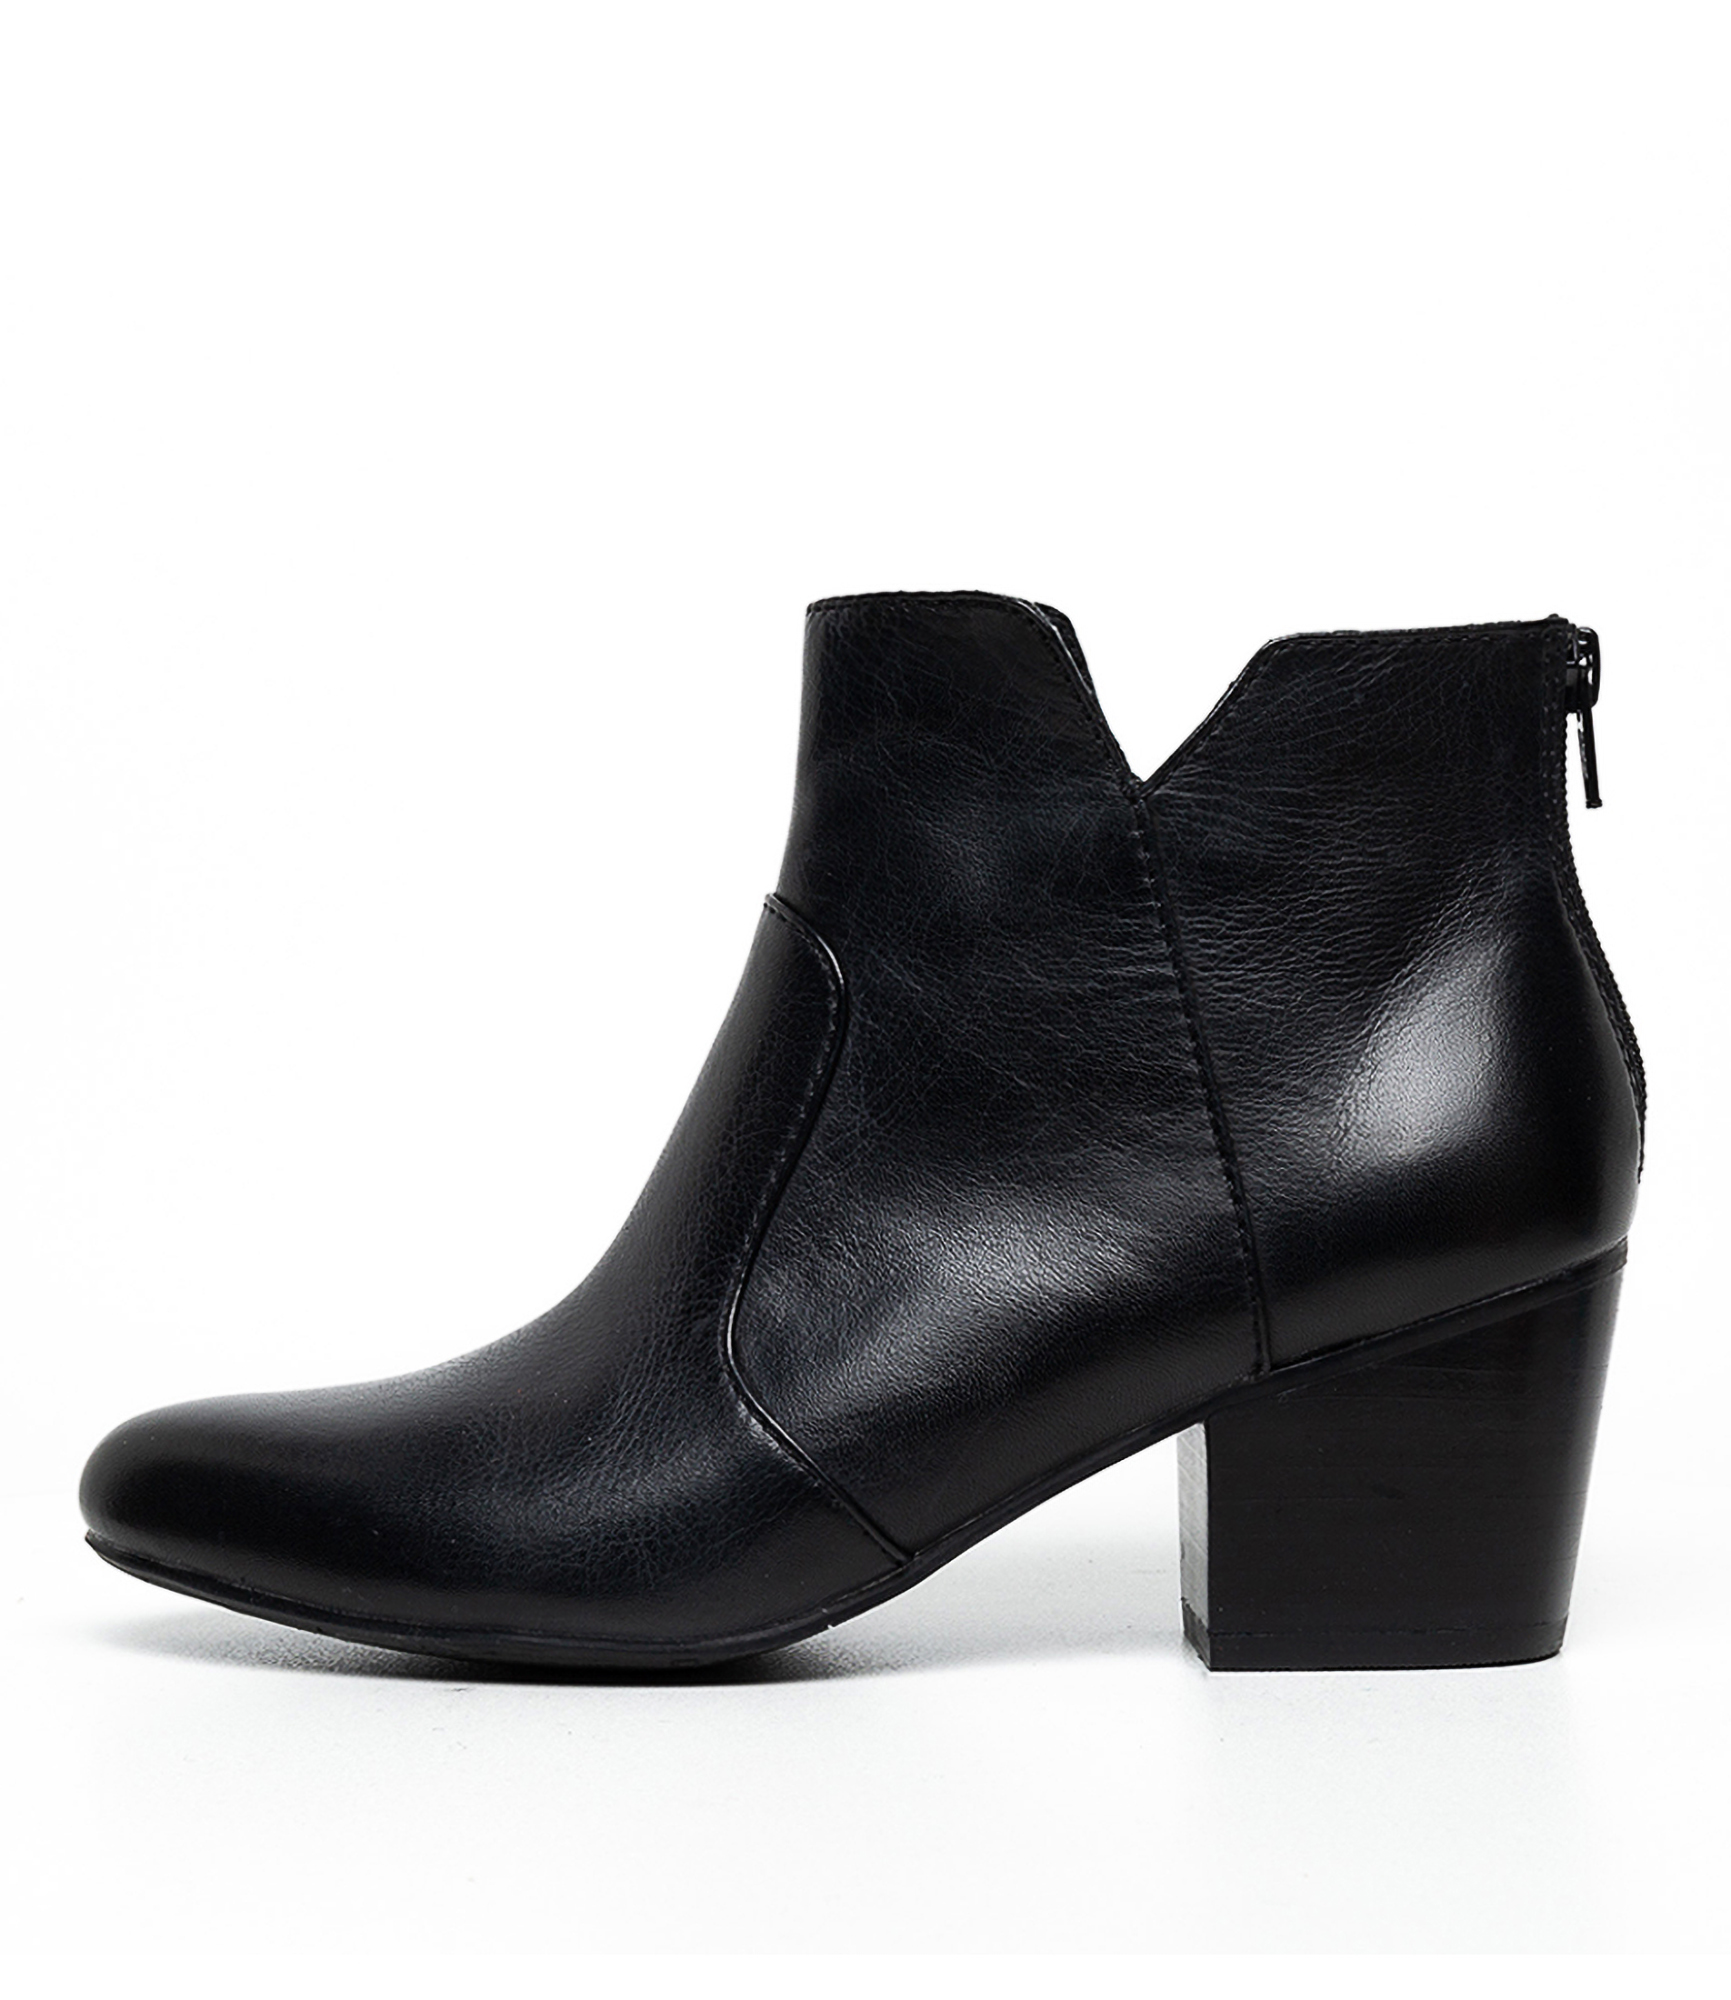 Buy Diana Ferrari Podium Df Black E Ankle Boots online with free shipping